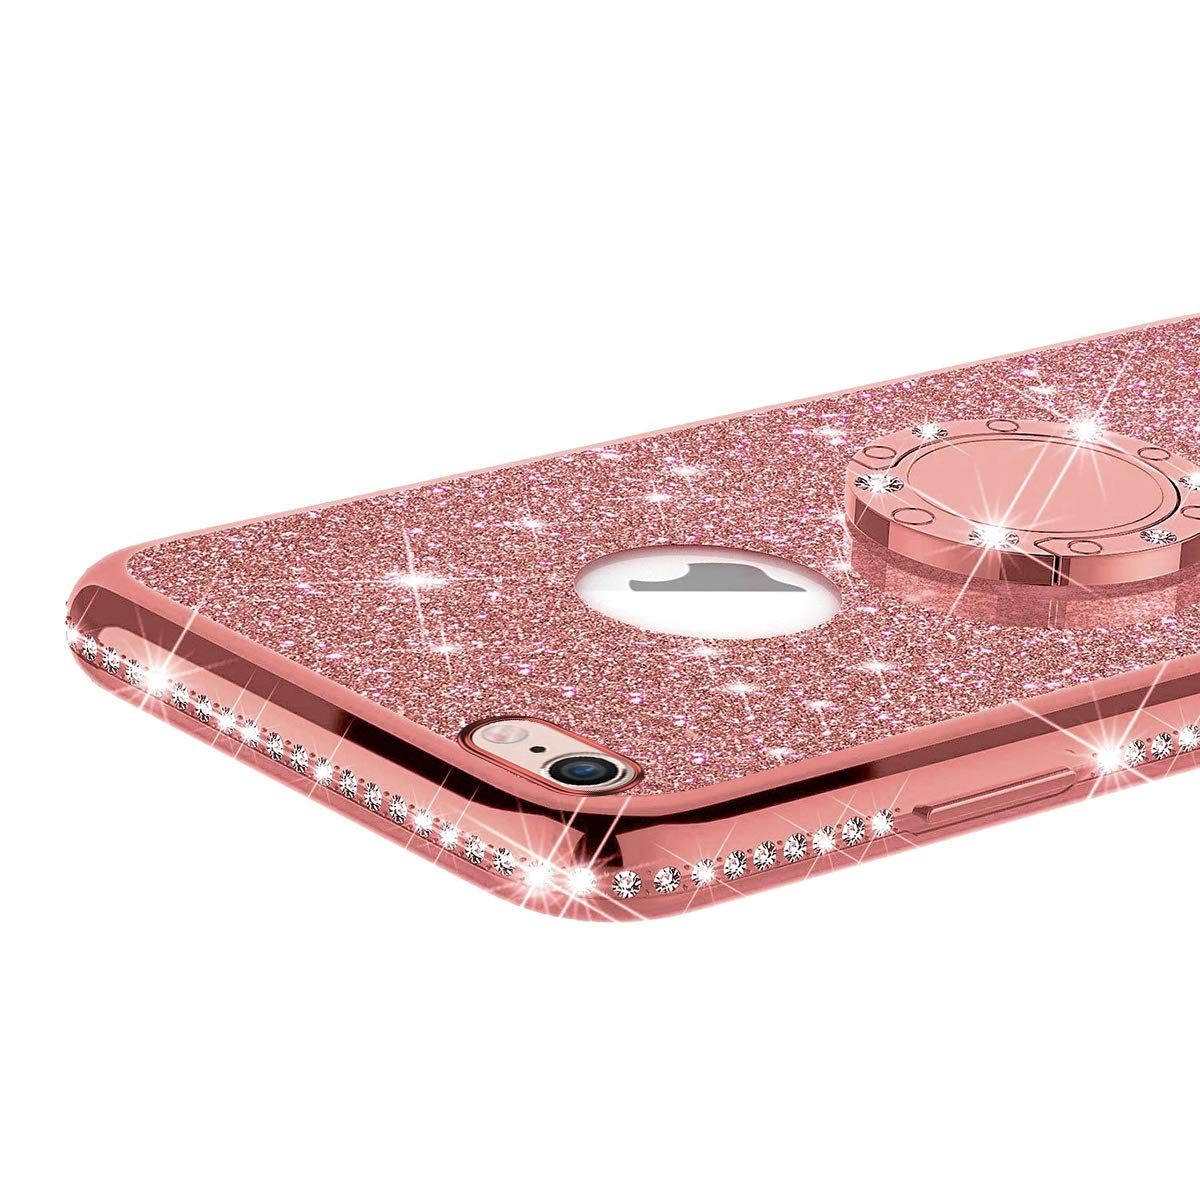 ikasus Case for iPhone 6S Plus//iPhone 6 Plus Glitter Case,Sparkly Glitter Bling Diamond Rhinestone Bumper with Ring Kickstand Flexible Soft Rubber Gel TPU Protective Case Cover for Girl Women,Purple